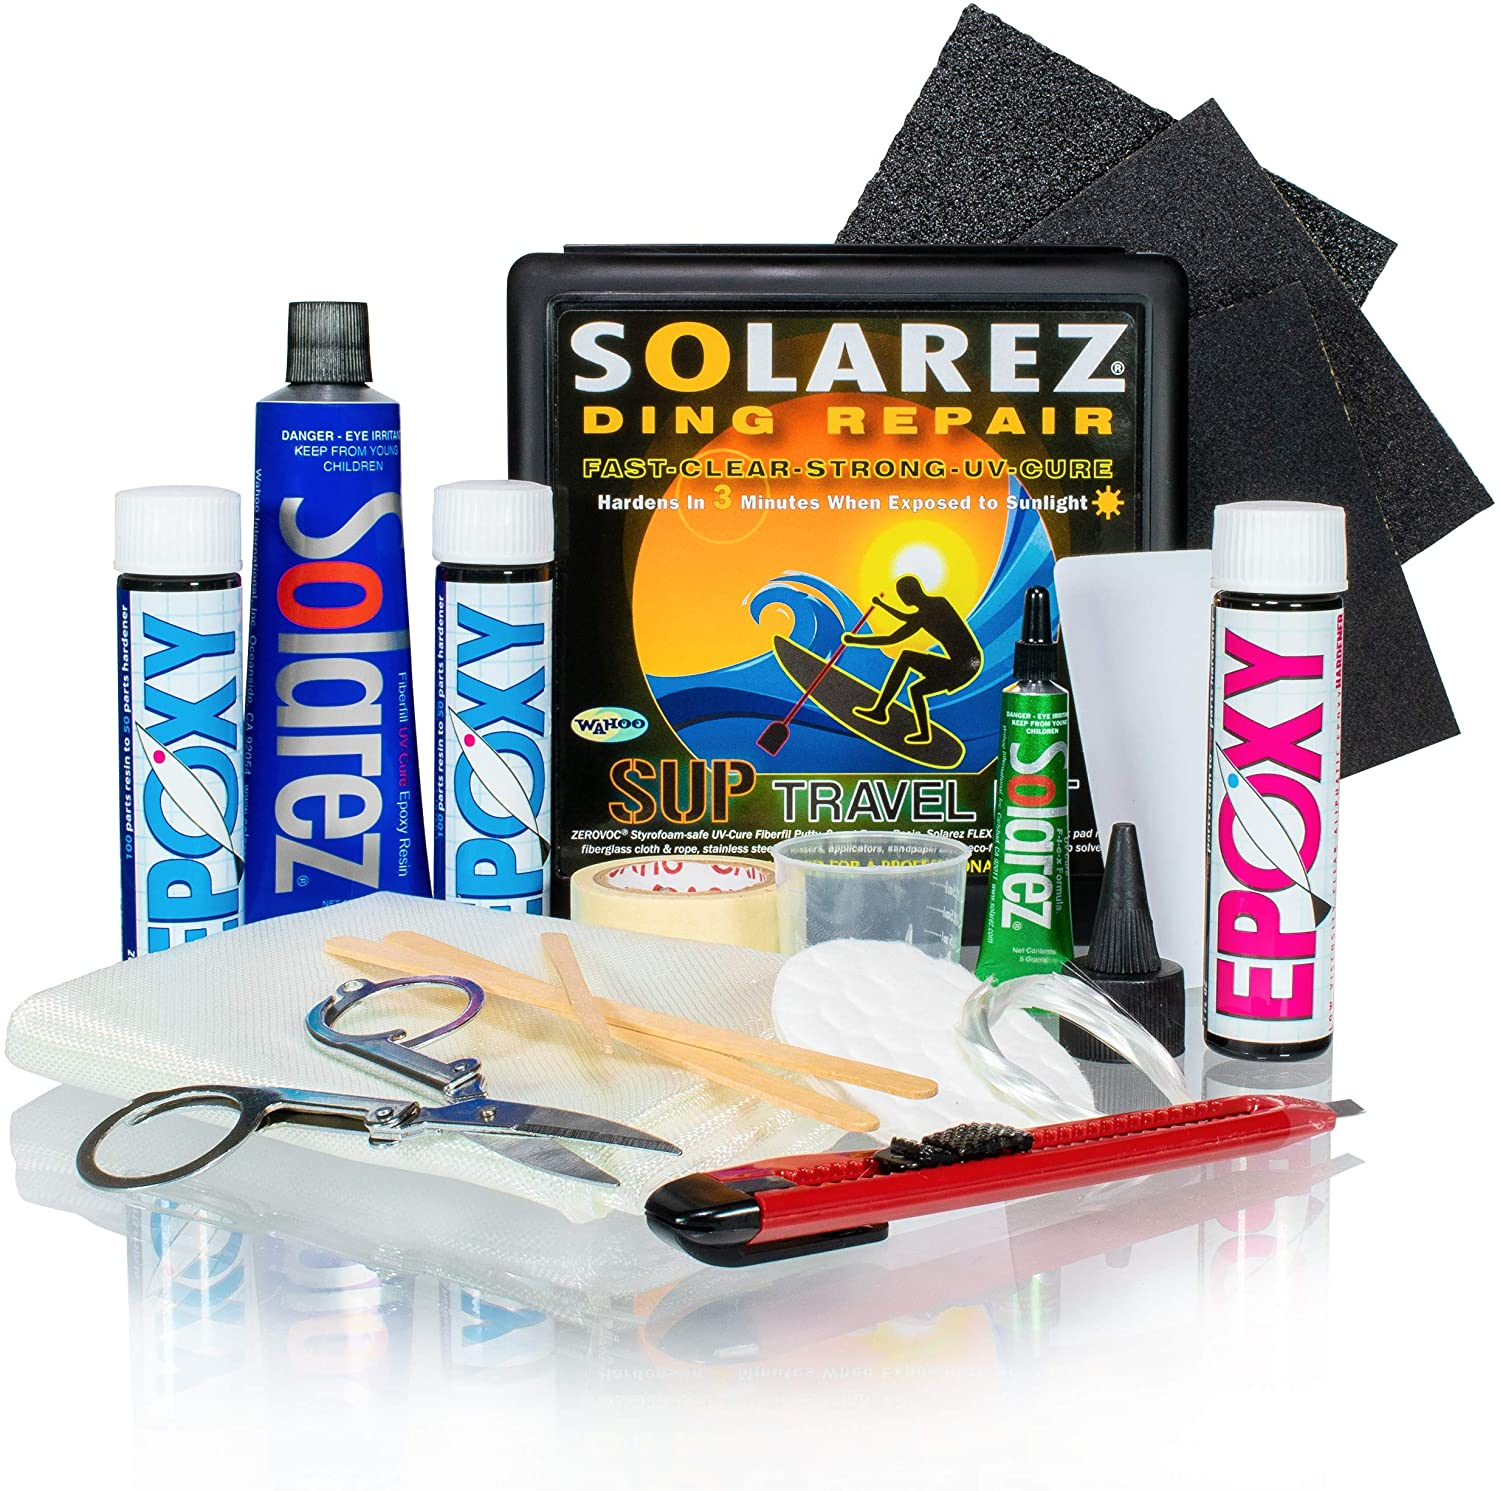 SOLAREZ UV Dealing full price reduction Cure SUP SEAL limited product Epoxy Pro Surfboard Travel Kit - Repai